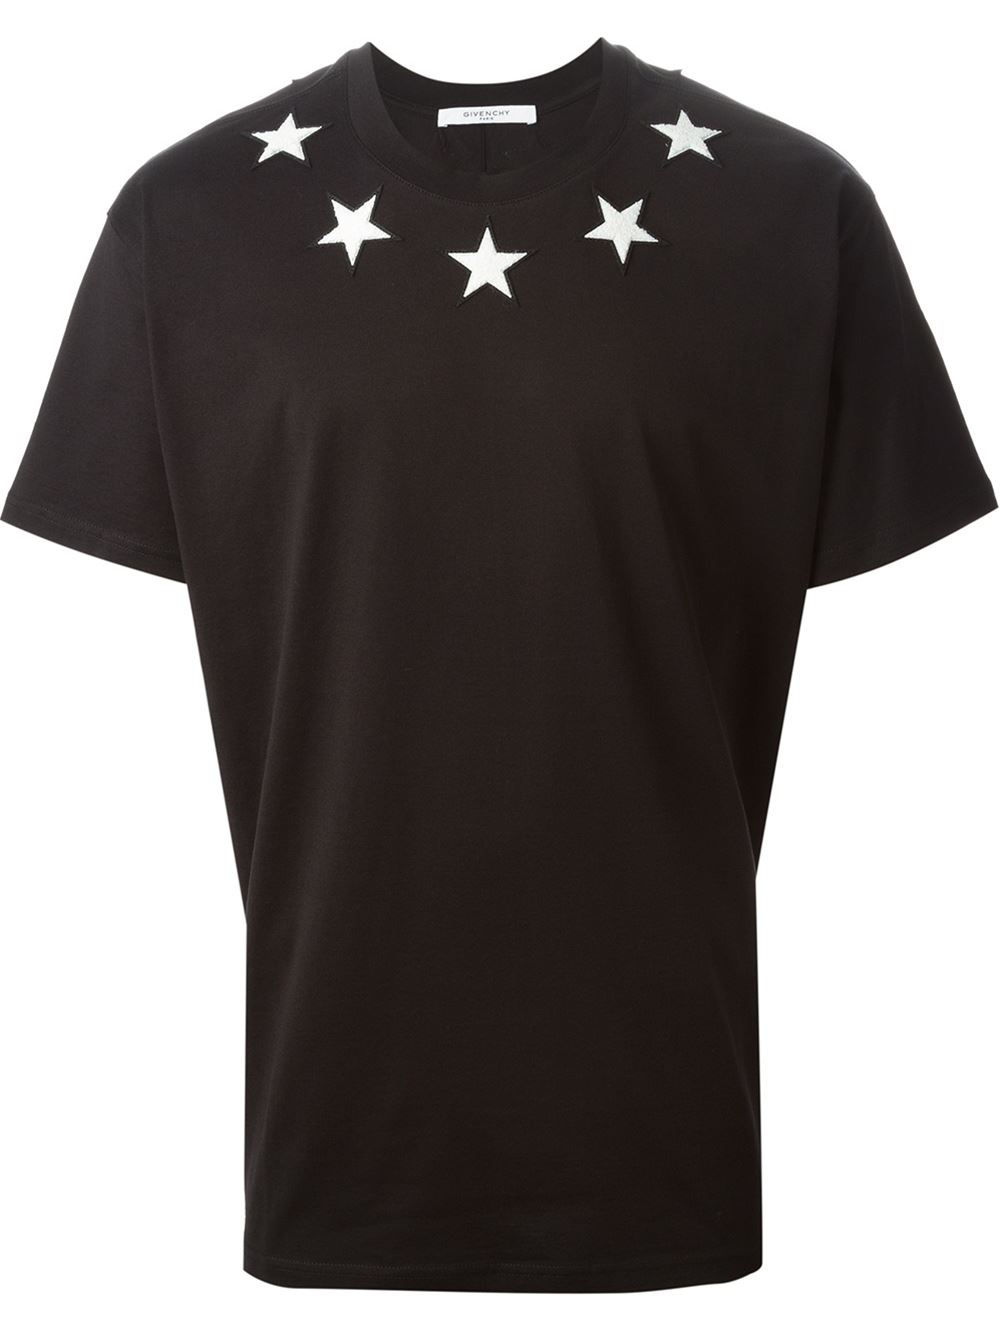 Givenchy Star Patch T Shirt In Black For Men Lyst